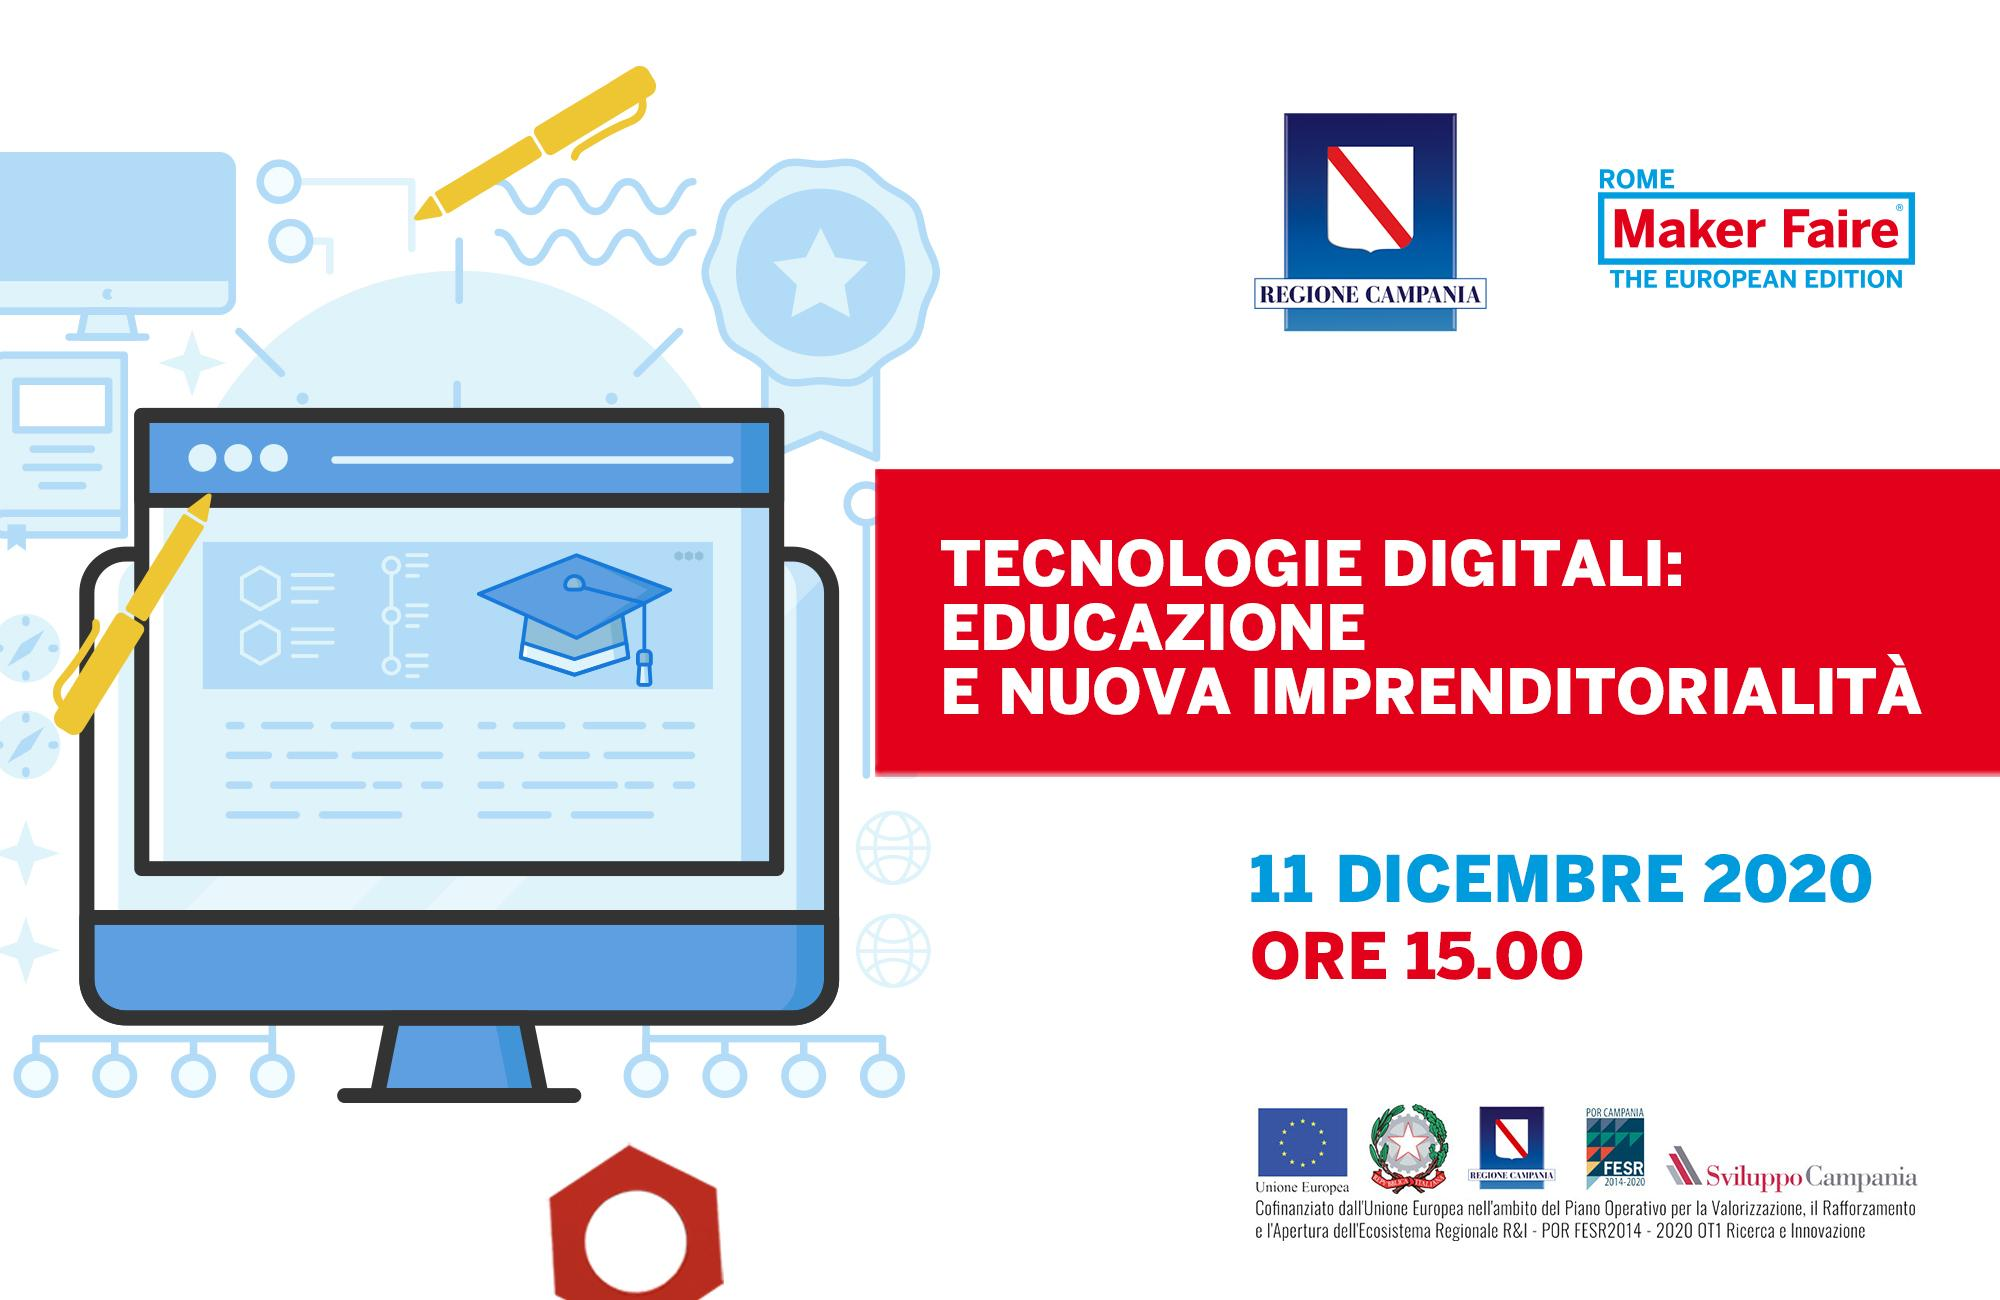 Digital Technologies: Education and New Entrepreneurship